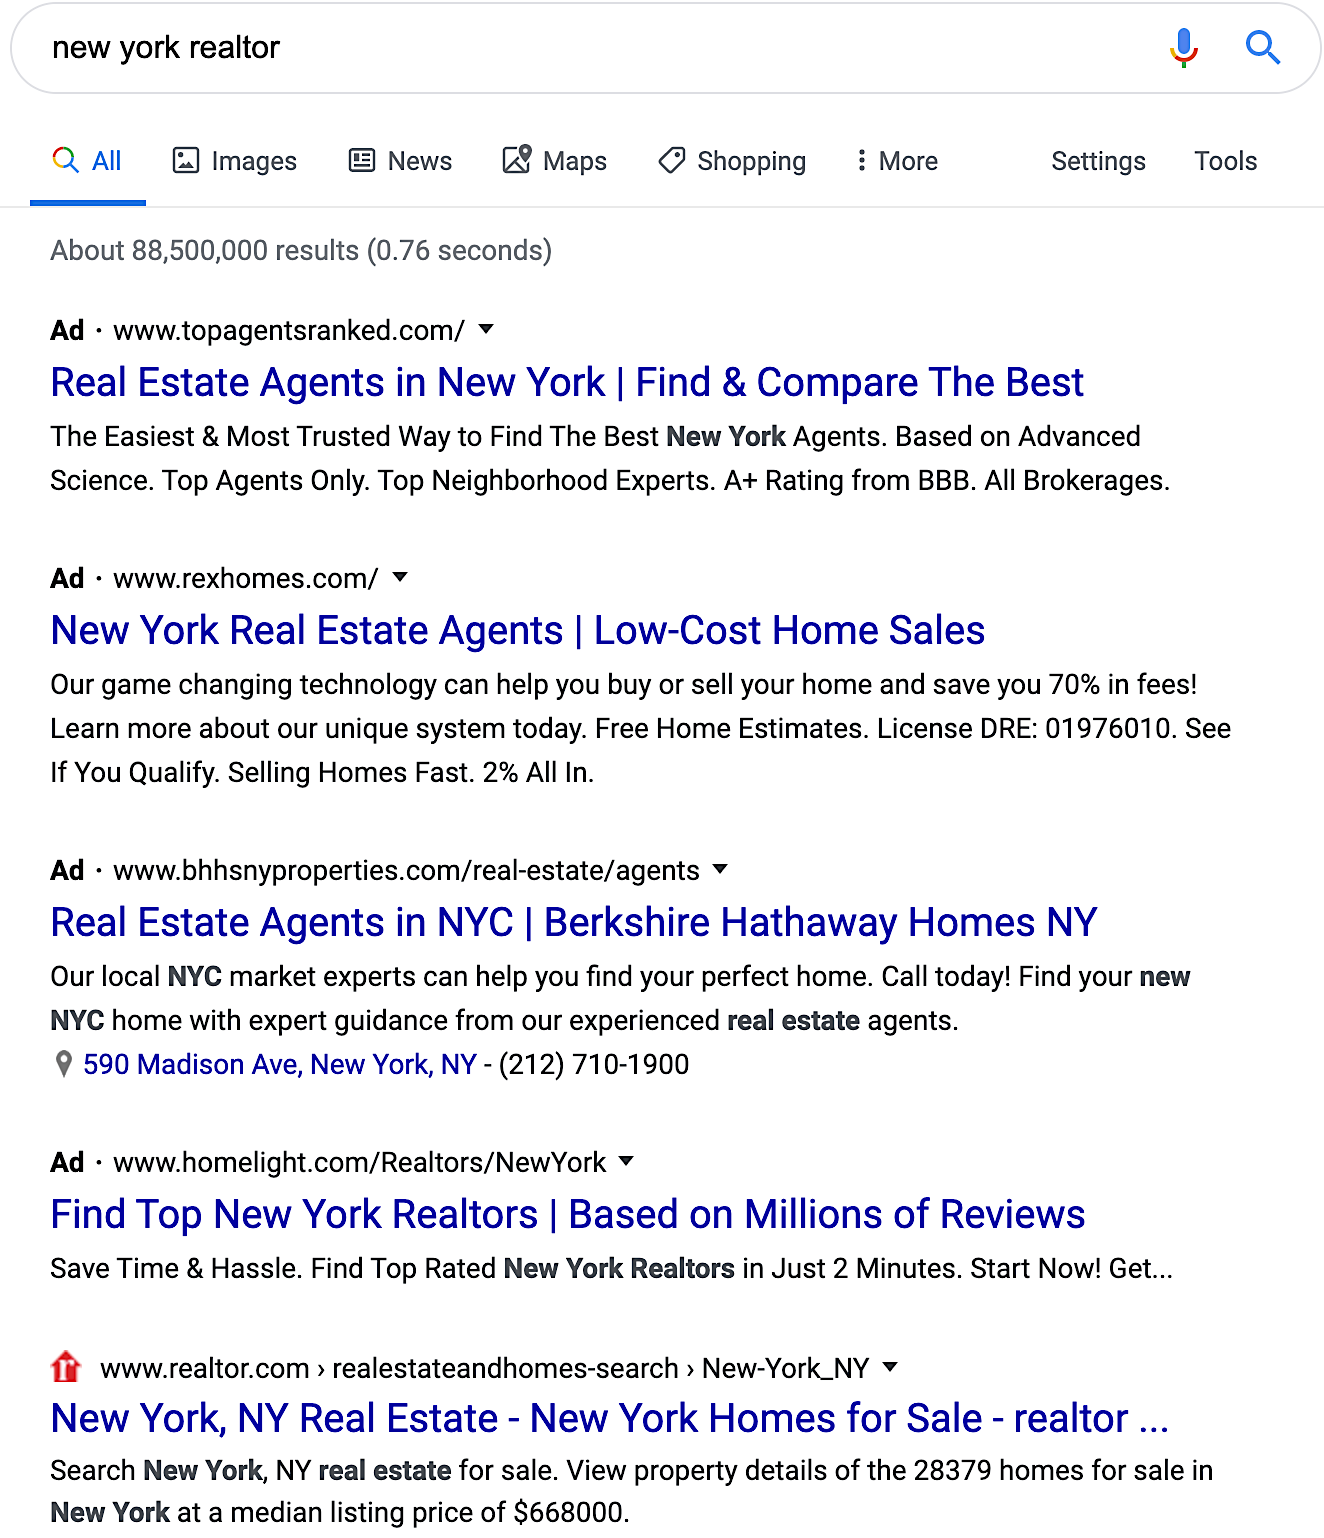 Google News Digest: Industry Articles, January 2020 Core Update, and More. Image 0